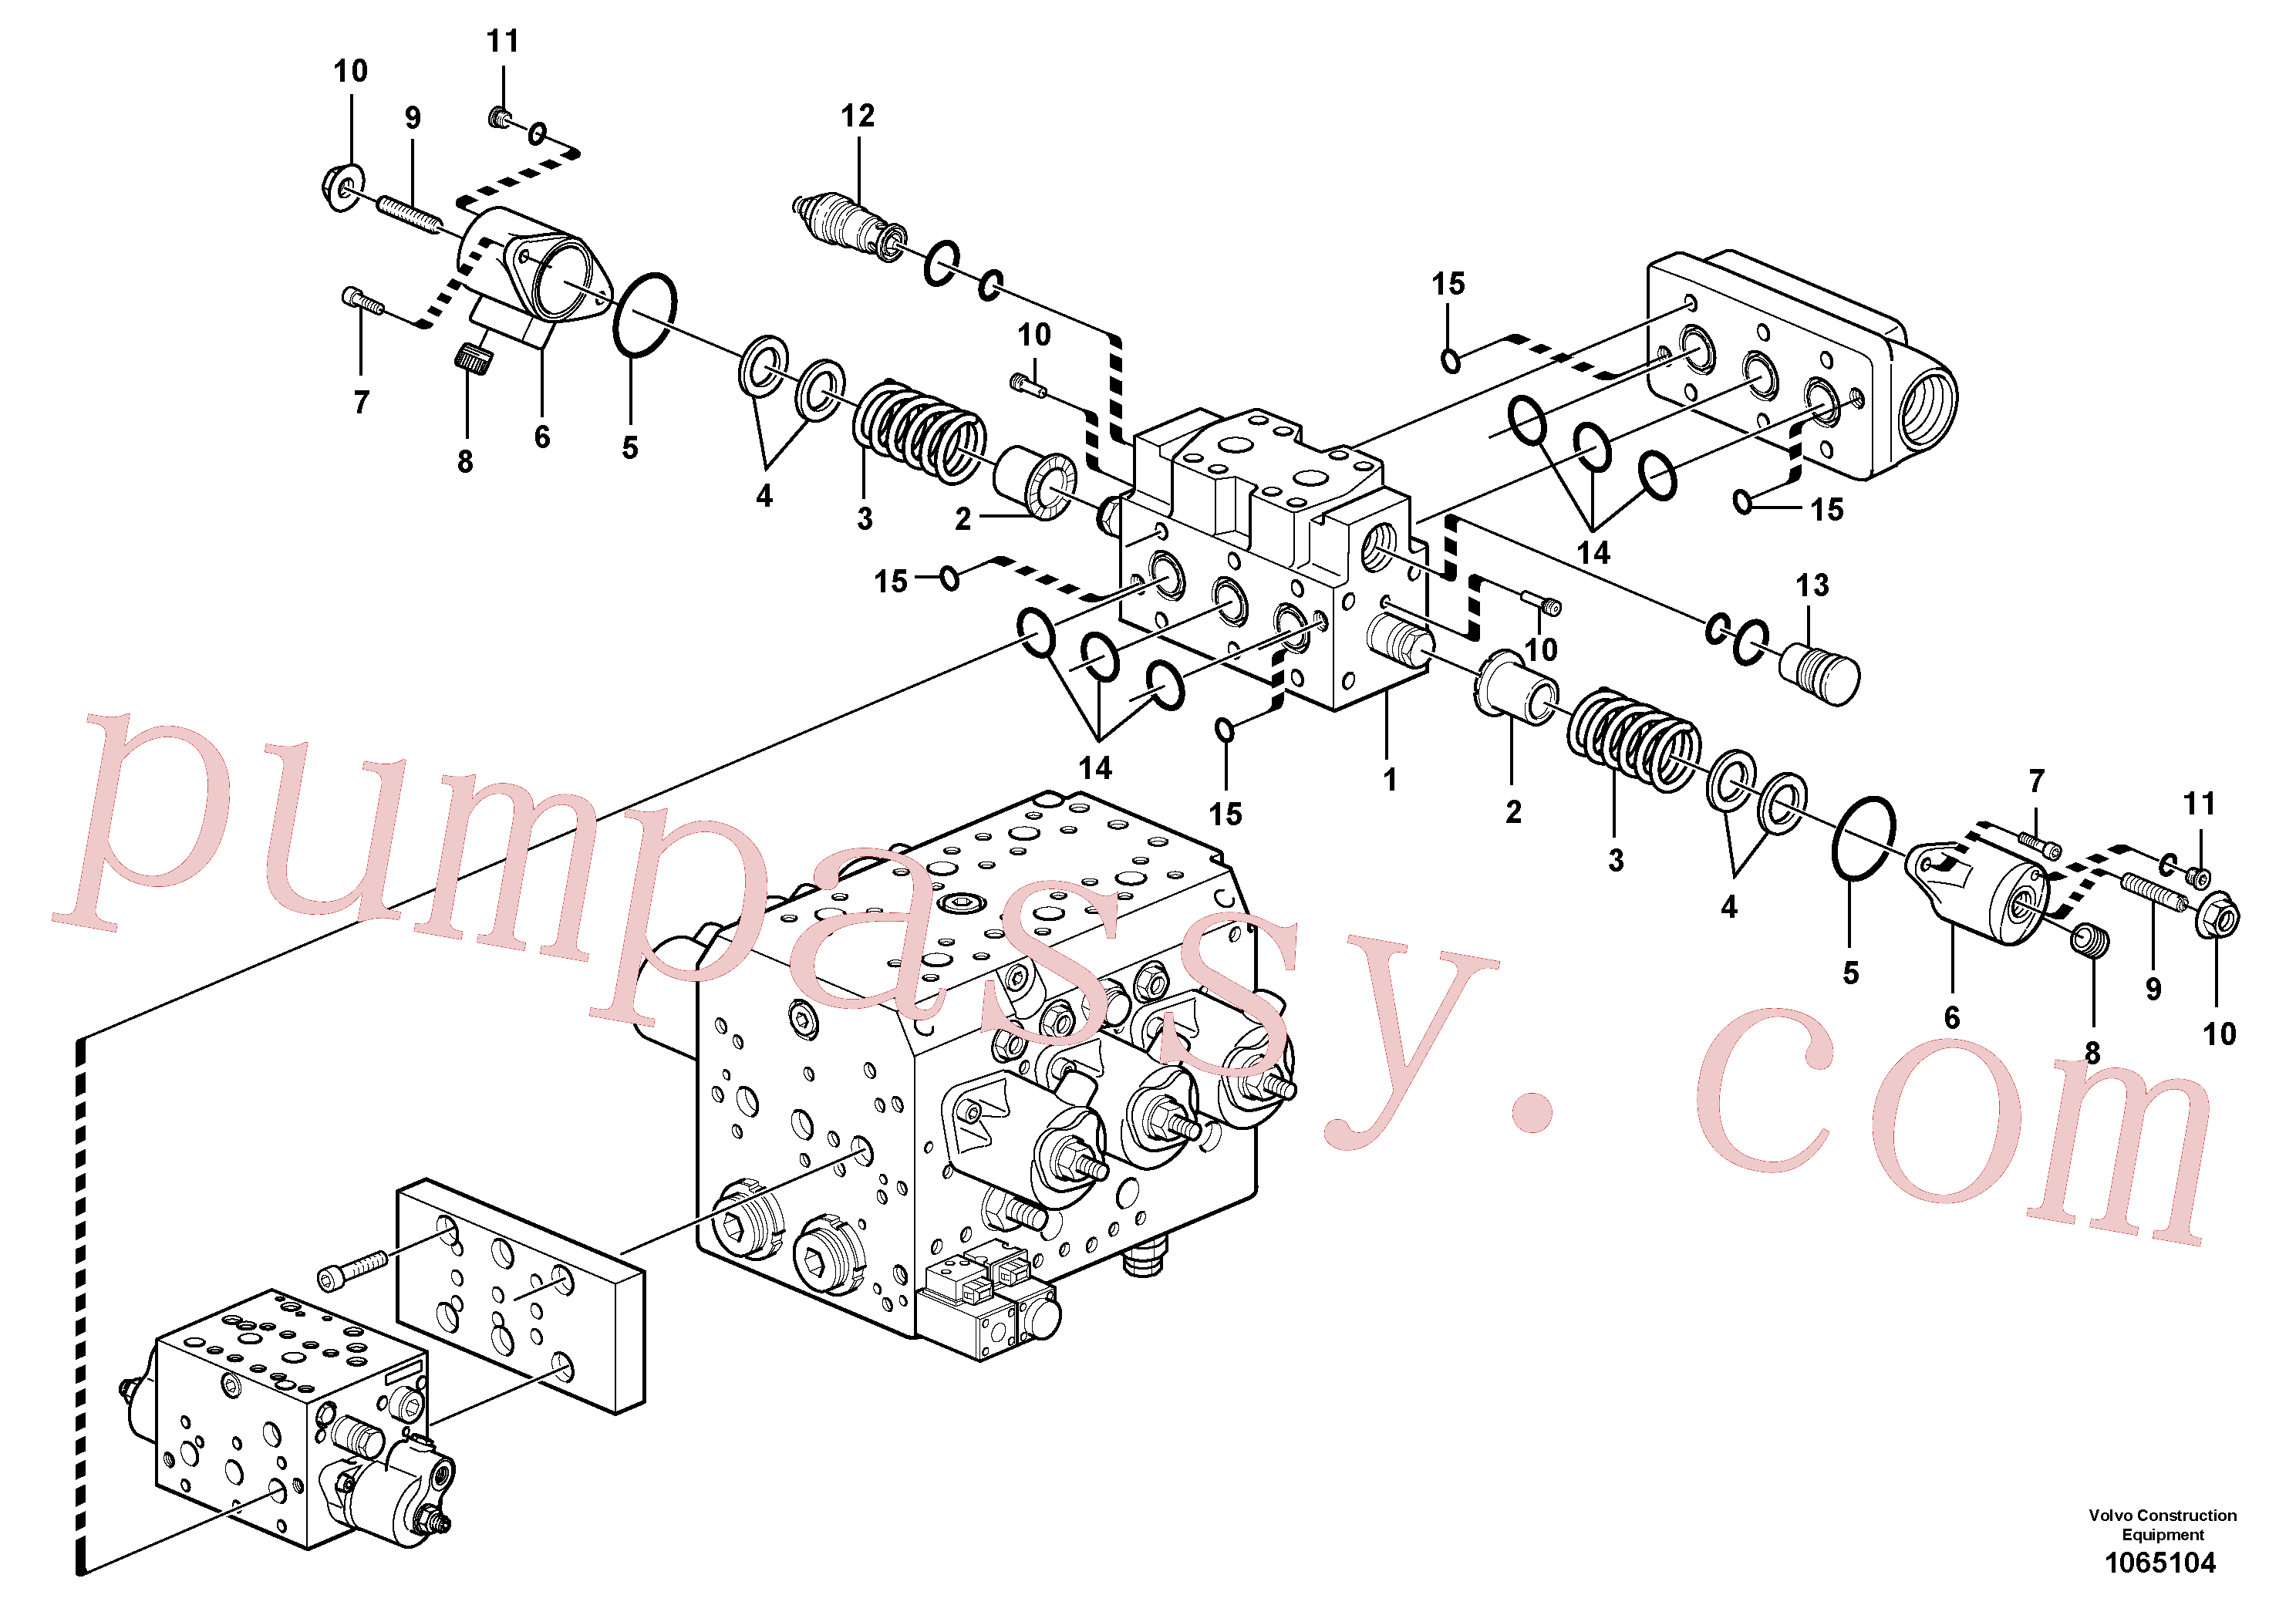 VOE11704893 for Volvo Valve(1065104 assembly)